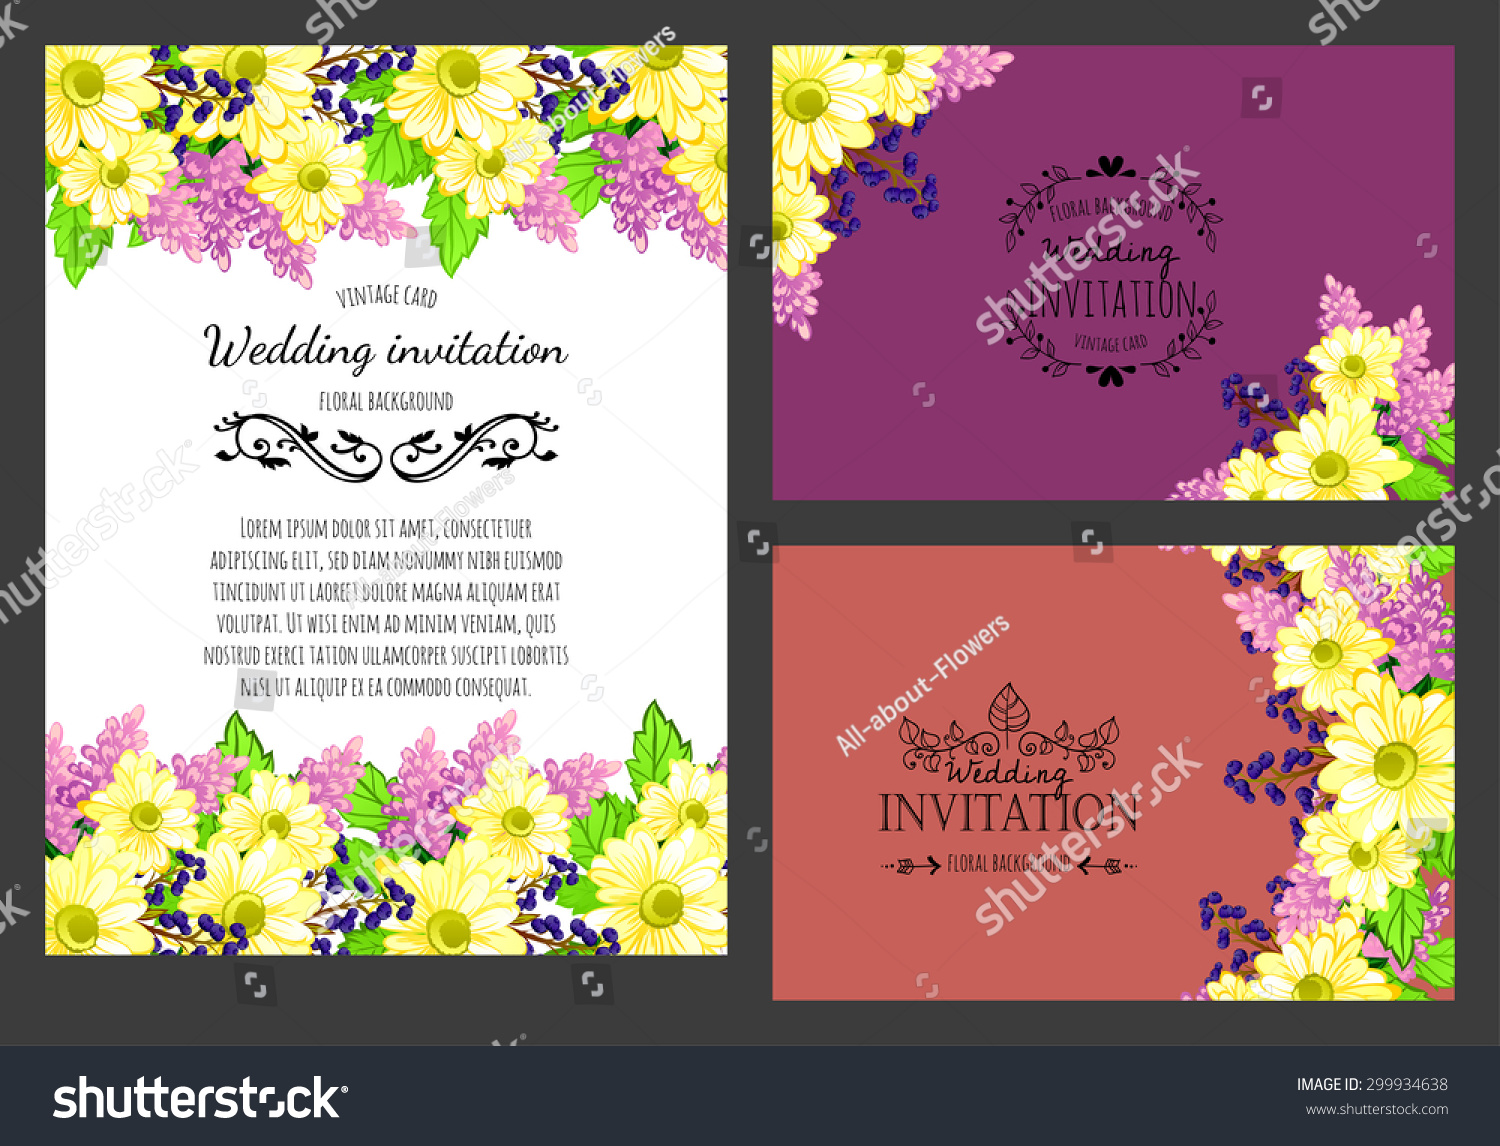 Delicate Invitation Card Beautiful Flowers Easy Stock Illustration ...